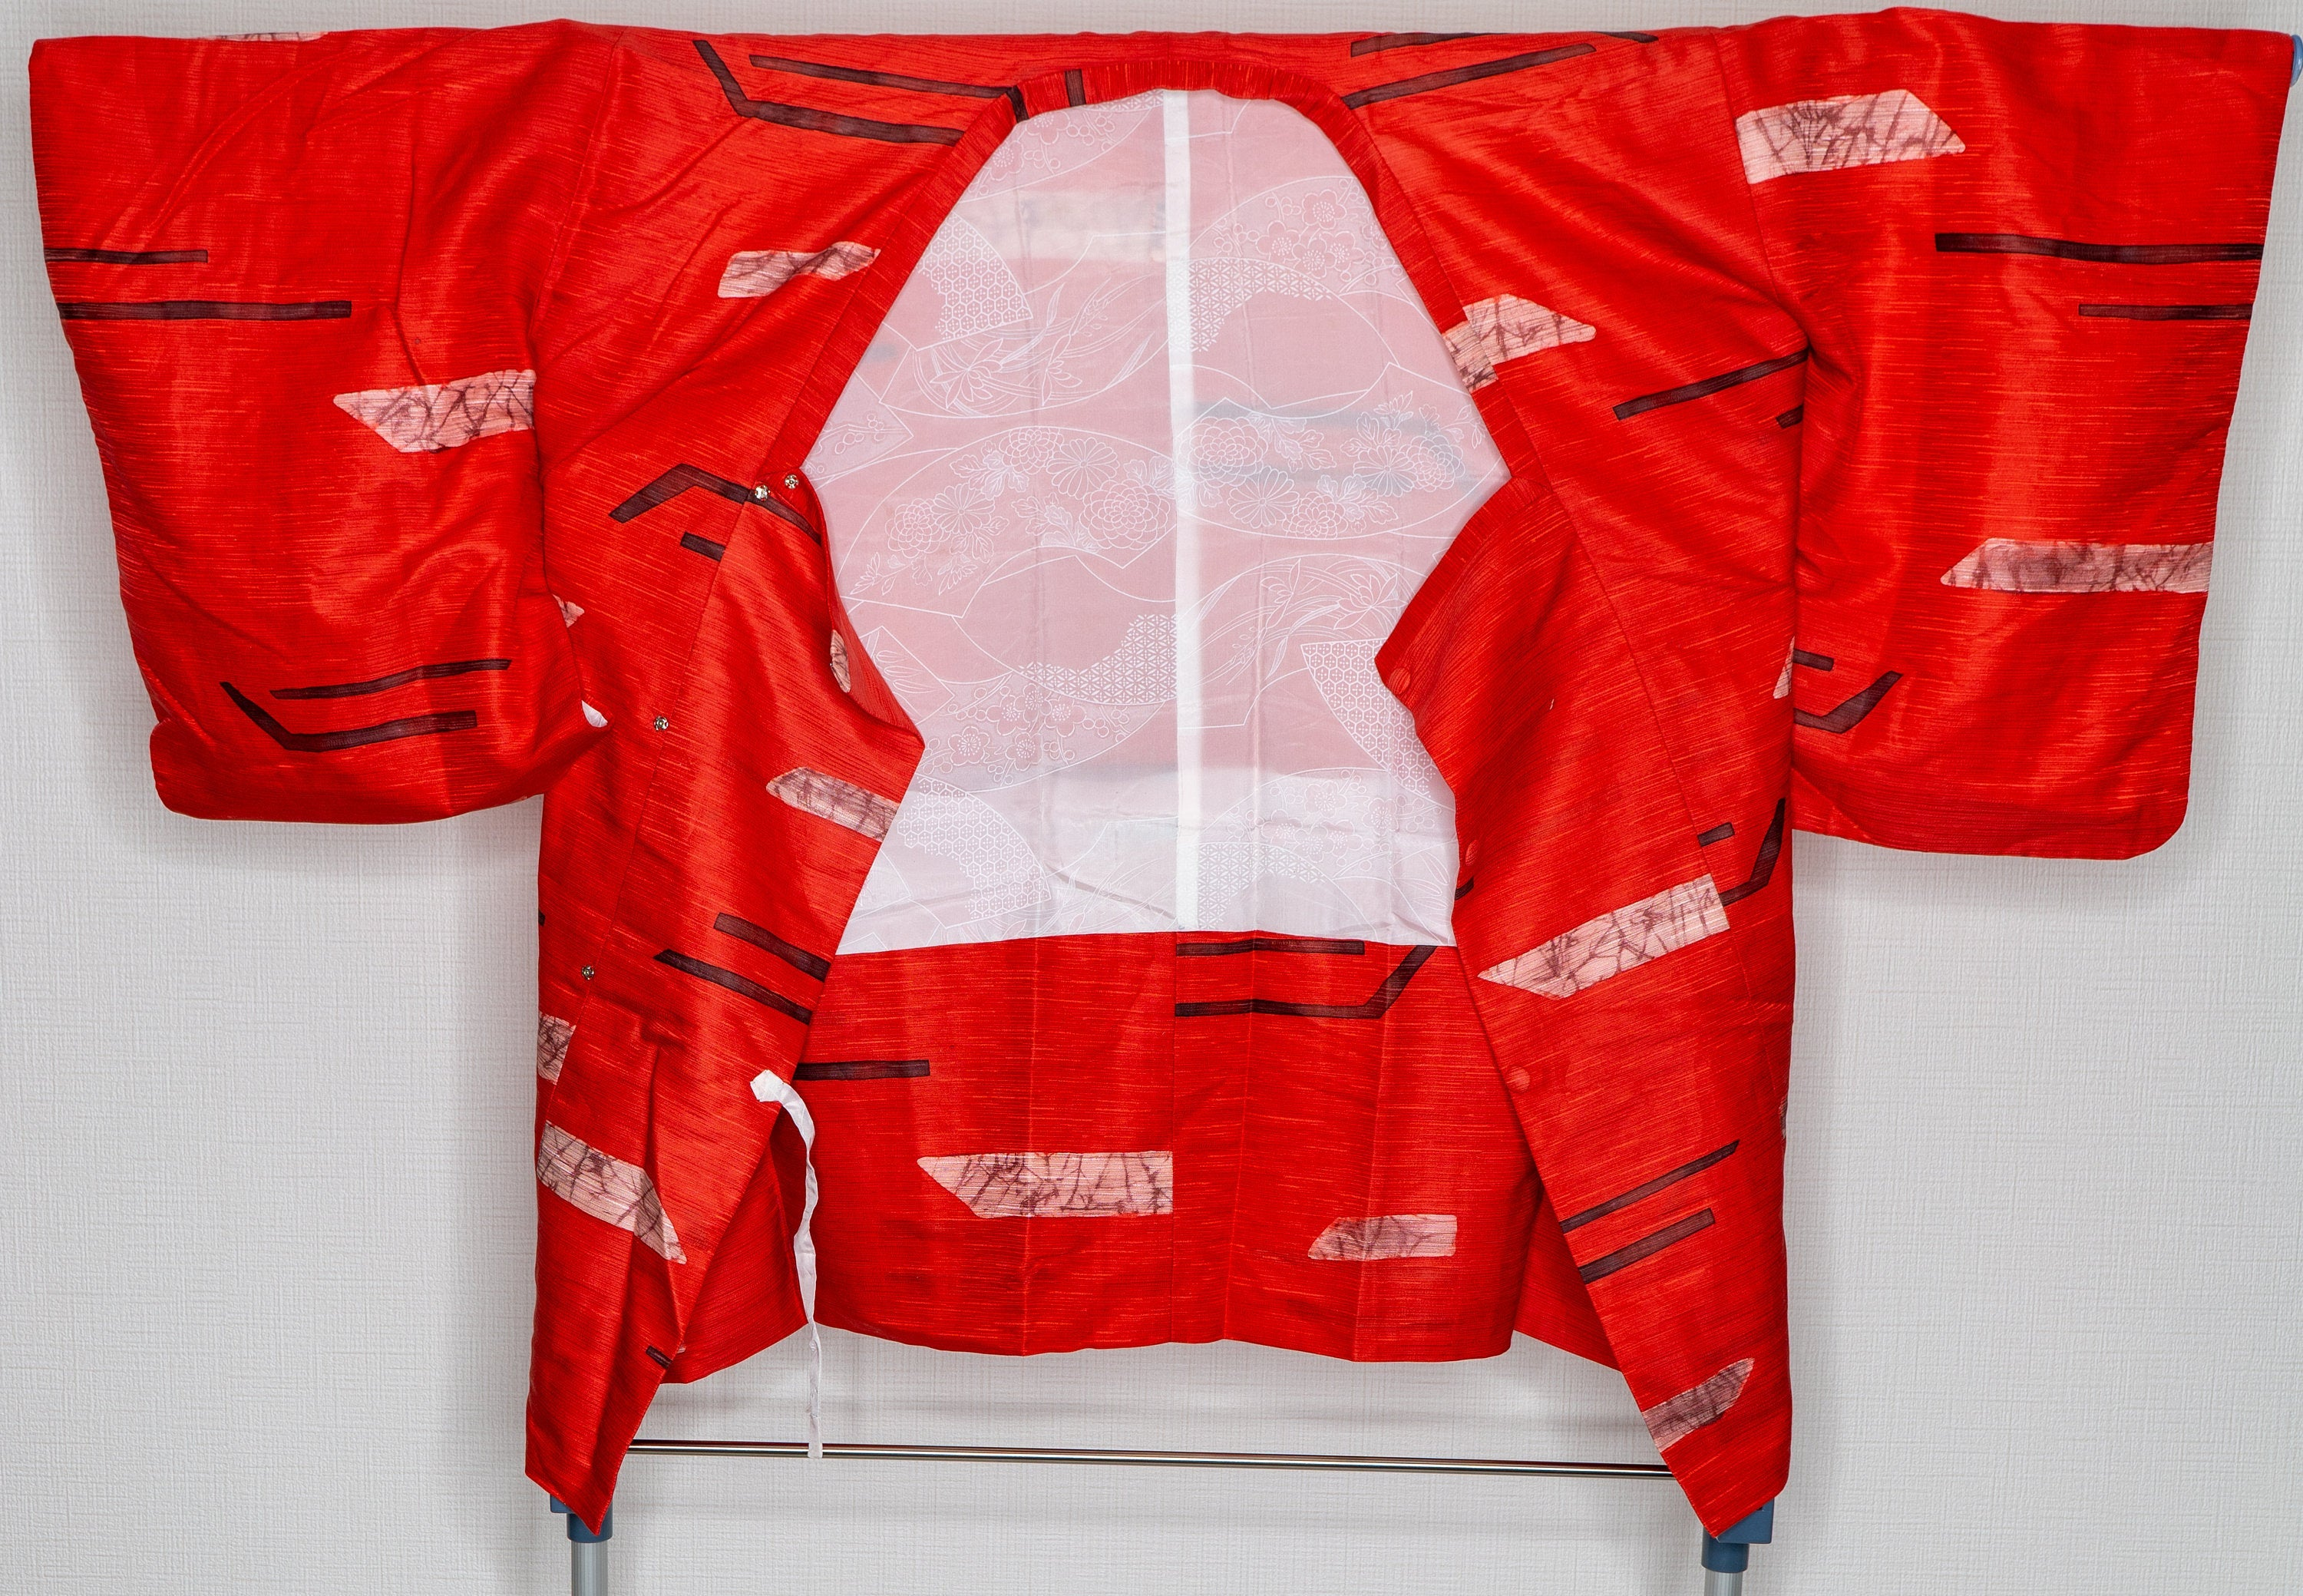 Abstract Symbols Red Haori - Modern Style Patterns Vintage Authentic Japanese Women's